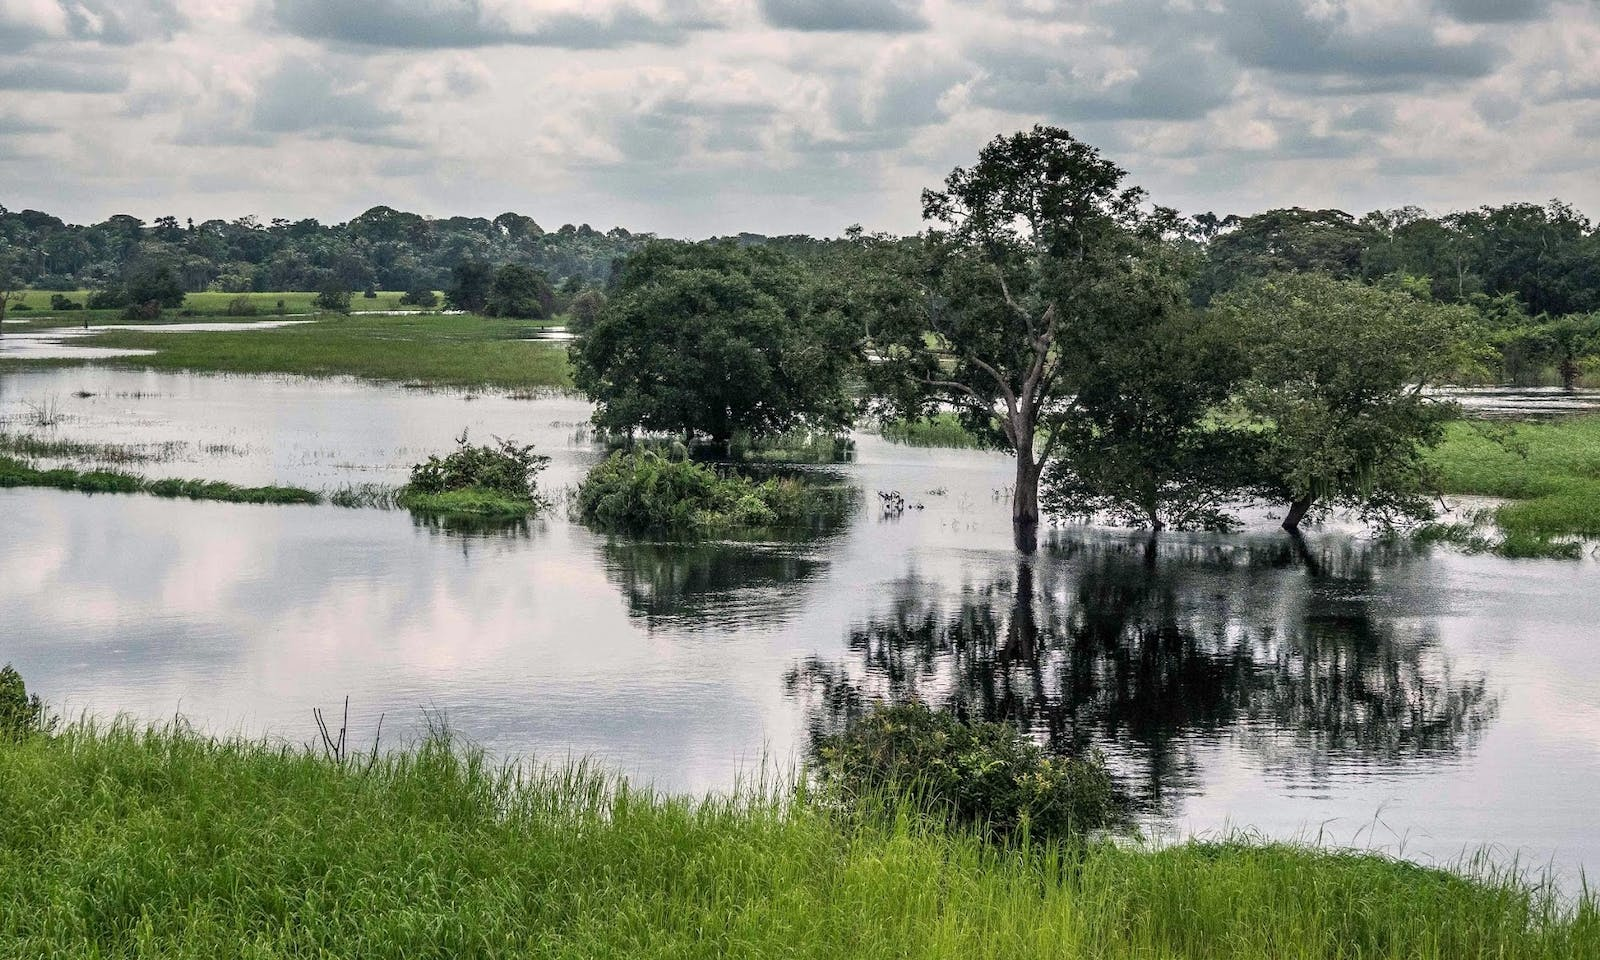 Western Congolian Swamp Forests